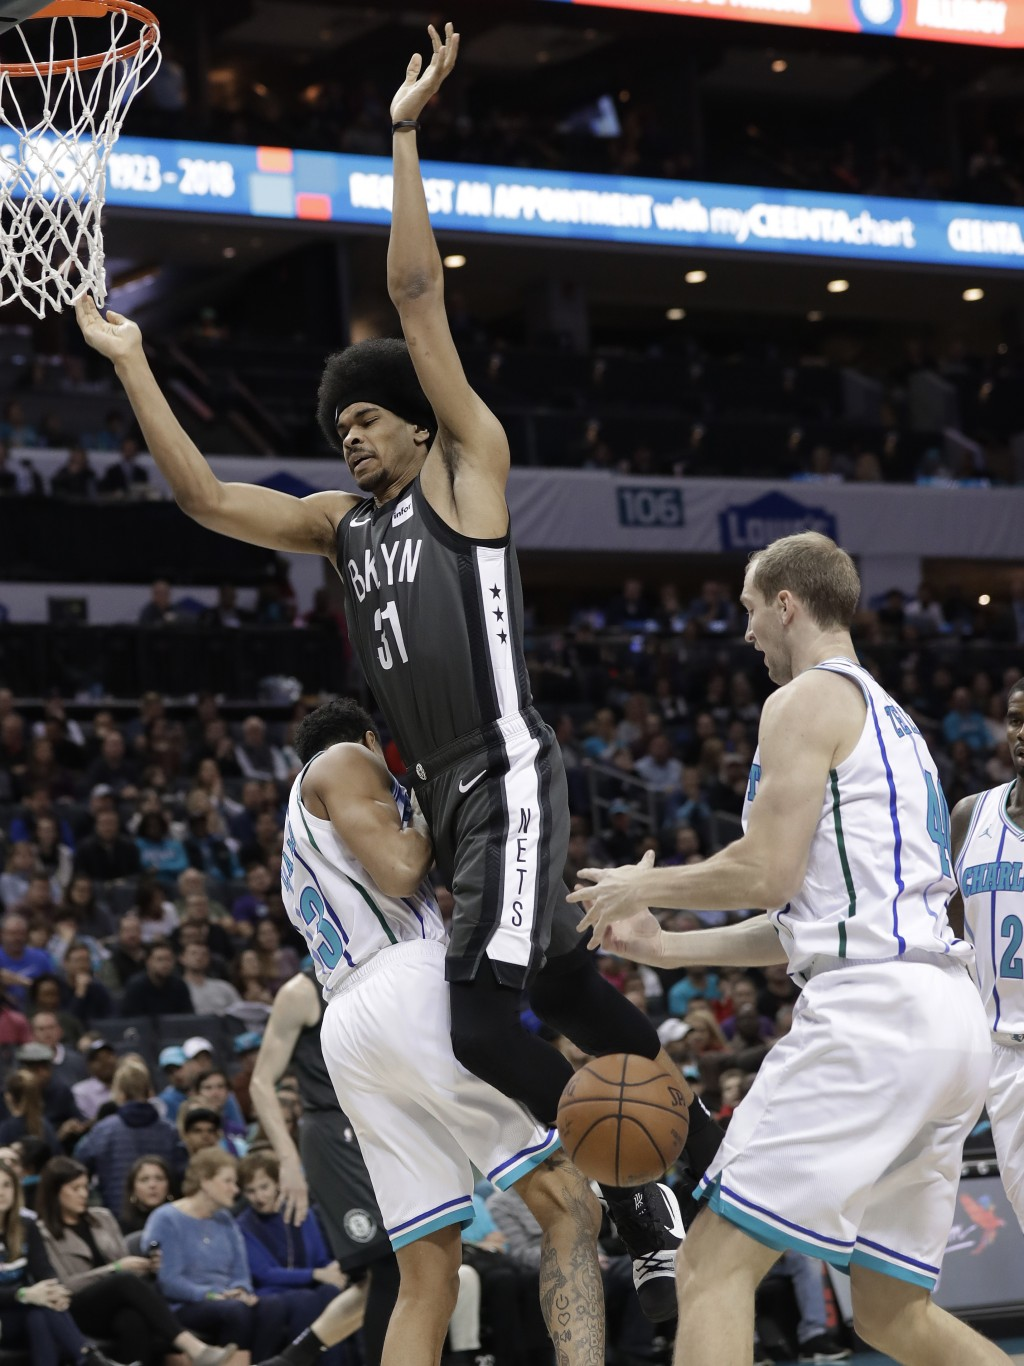 Brooklyn Nets' Jarrett Allen (31) loses the ball as he drives between Charlotte Hornets' Jeremy Lamb (3) and Cody Zeller during the first half of an N...